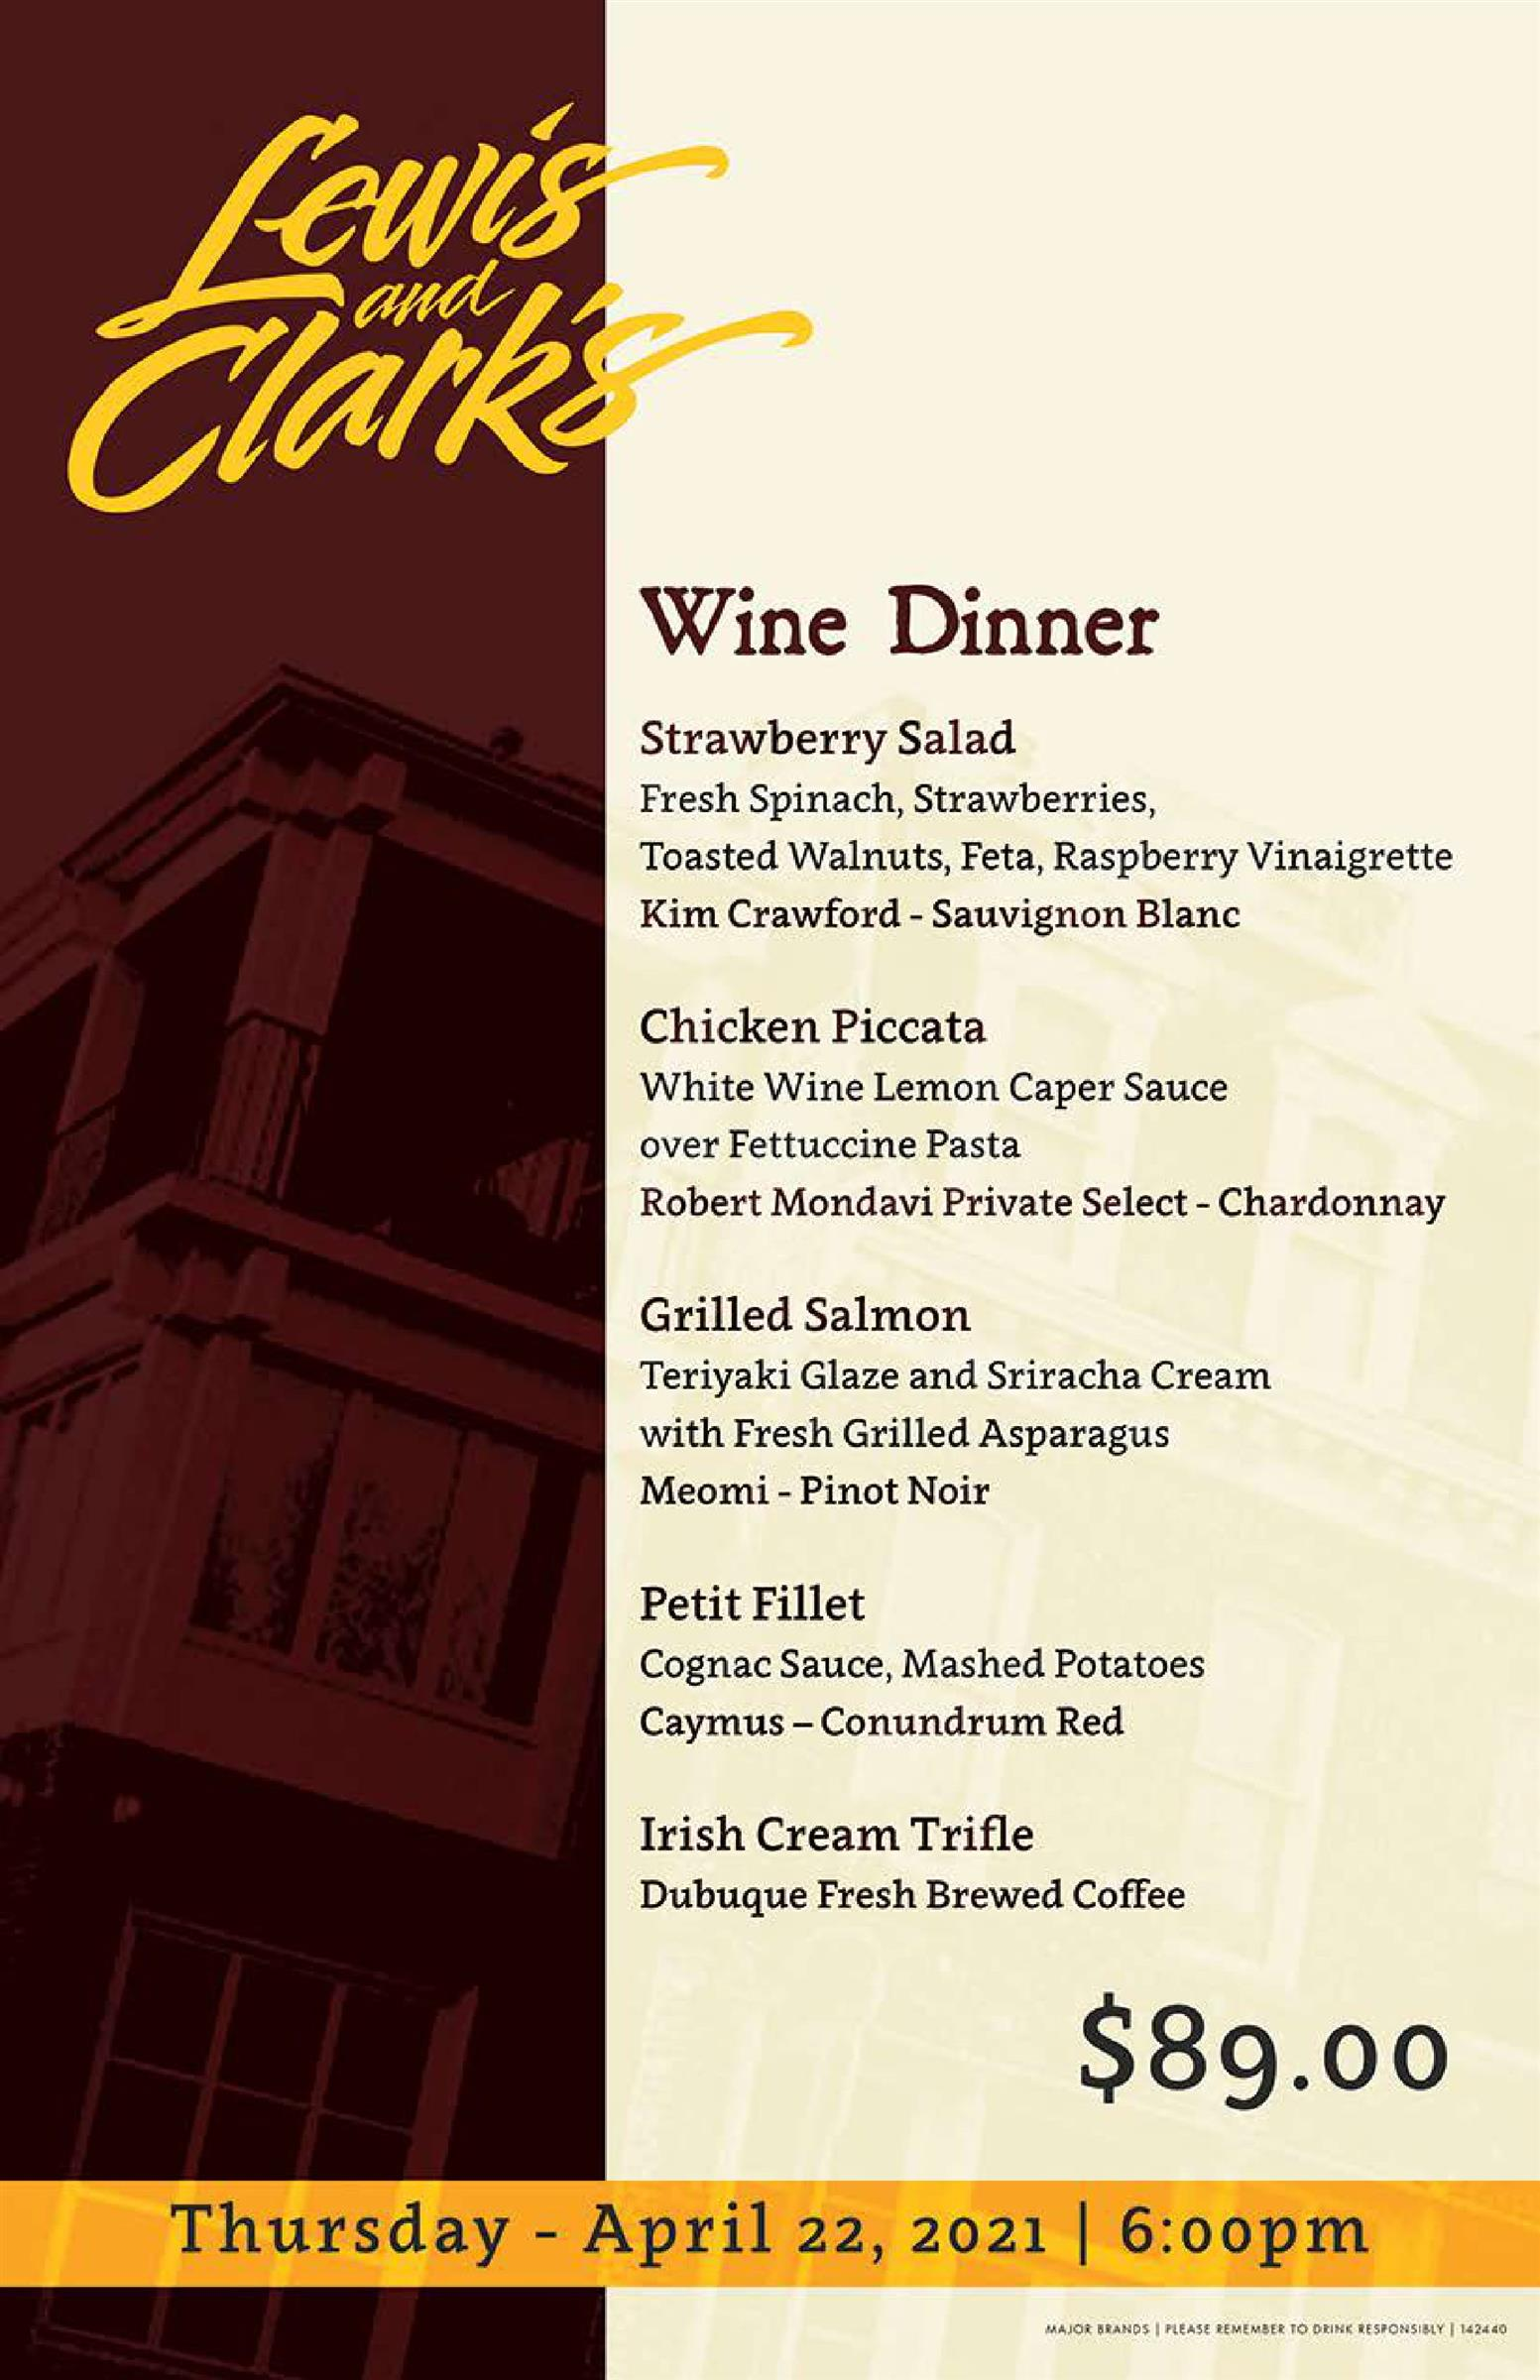 Lewis and Clark's Wine Dinner- Strawberry Salad: Fresh Spinach, Strawberries, Toasted Walnuts, Feta, Raspberry Vinaigrette, Kim Crawford- Sauvignon Blanc. Chicken Piccata: White wine lemon caper sauce over fettuccine pasta, rober mondavi private select - chardonnay. Grilled Salmon: Teriyaki glaze and Sriracha Cream with fresh grilled asparagus, Meomi-pinot noir. Petit Fillet: Cognan sauce, mashed potatoes, caymus-conundrum red. Irish cream trifle- dubuque fresh brewed coffee $89.00 Thursday april 22, 2021 6:00pm